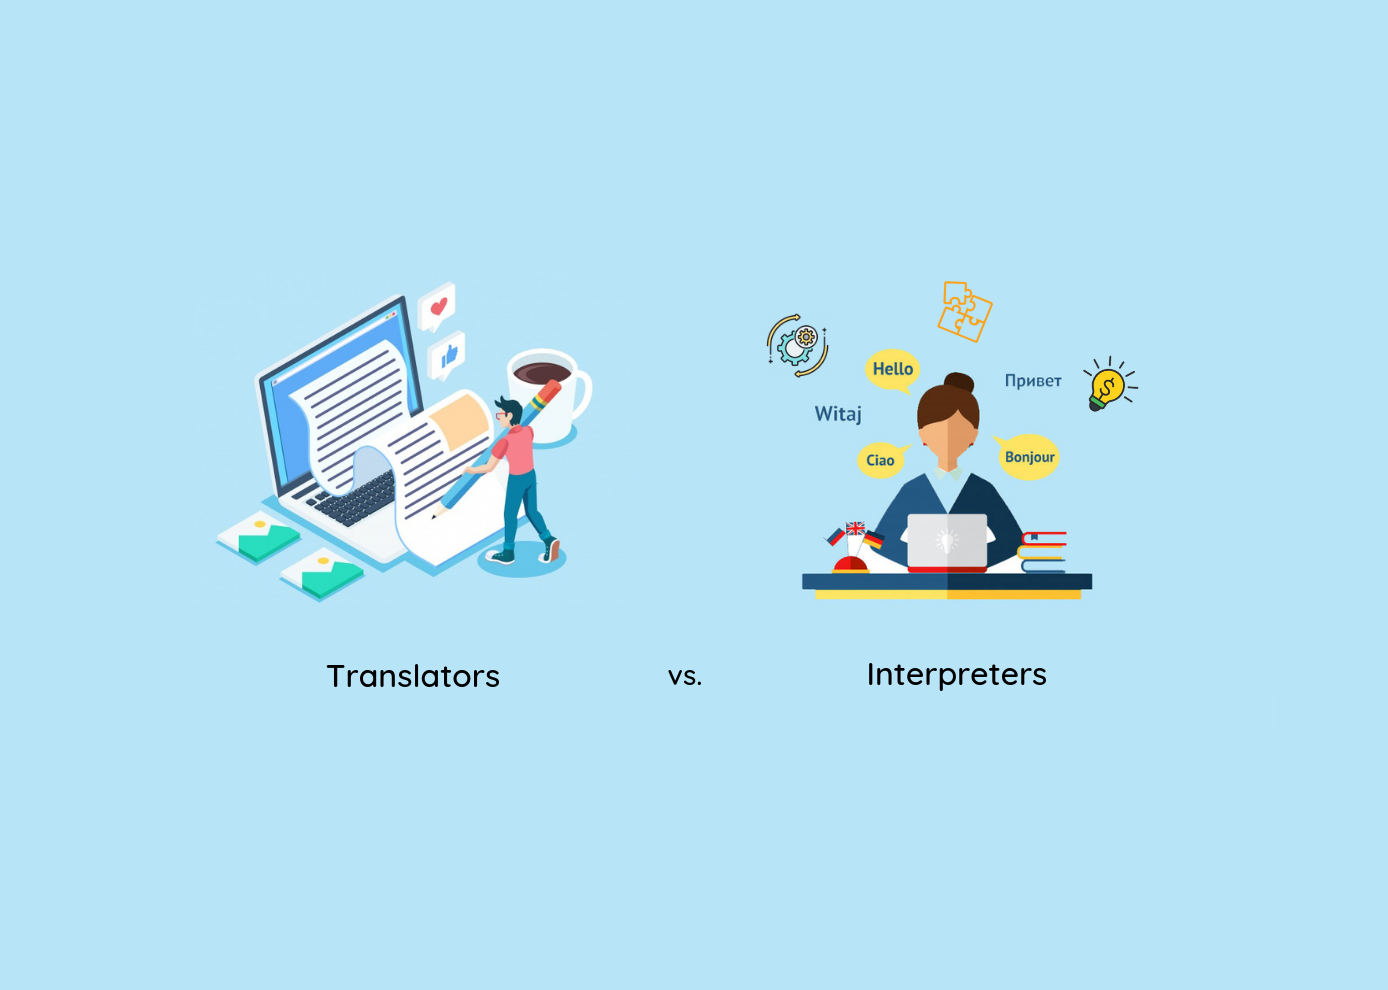 Translators vs Interpreters: Similarities and Differences